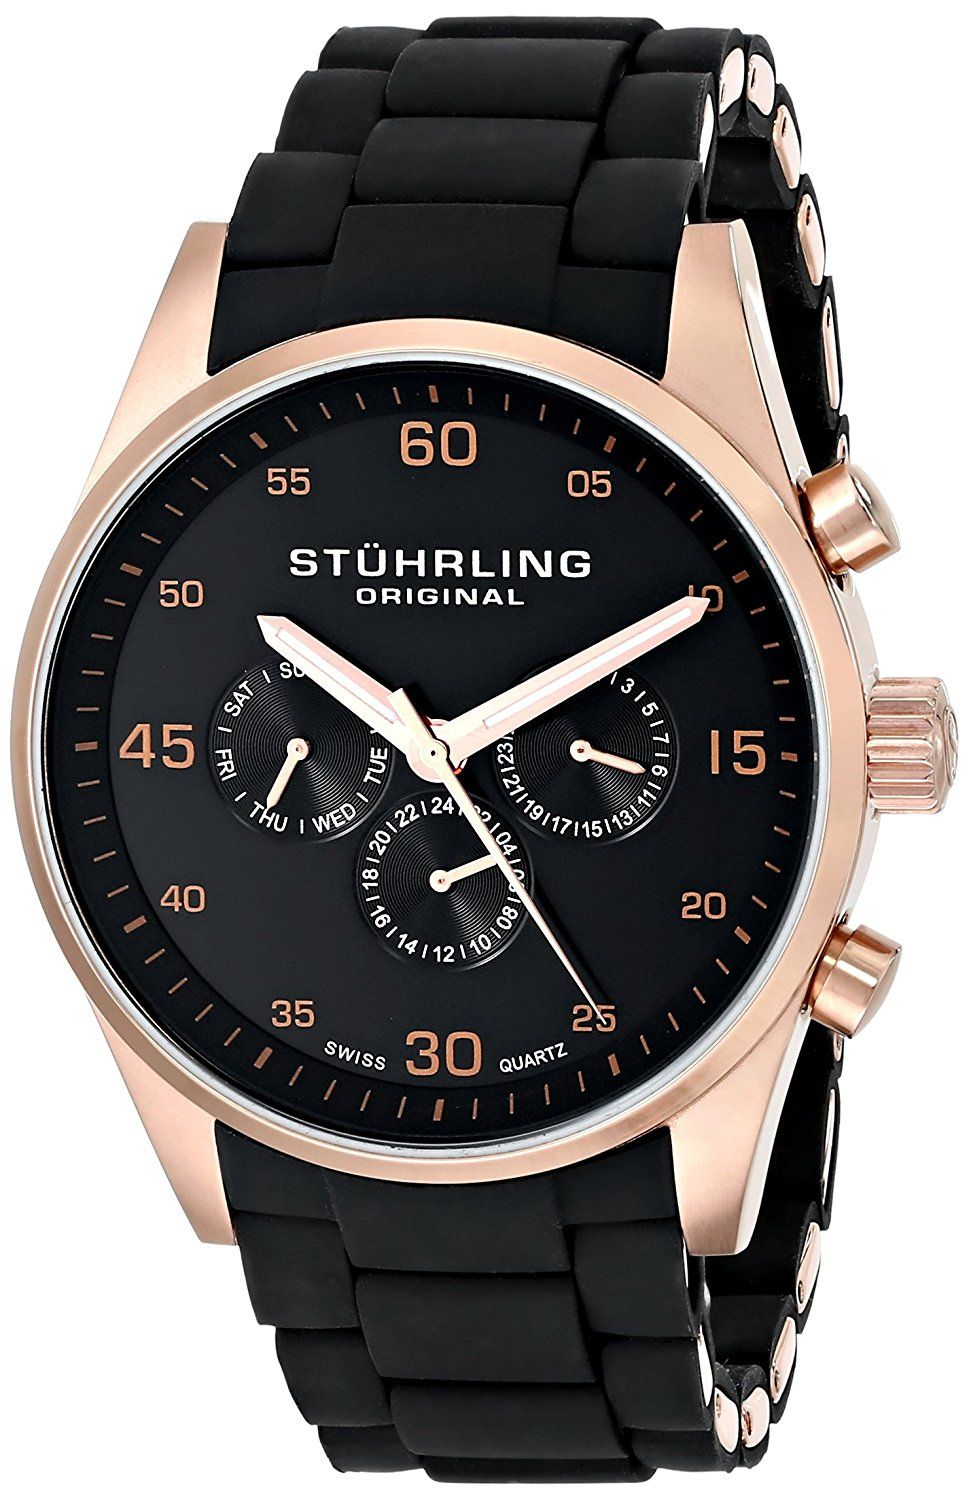 Stuhrling Original Unisex 352.04 Special Reserve Quest Rose Gold Watch with Silicone Covered Bracelet -- Read more at the image link.